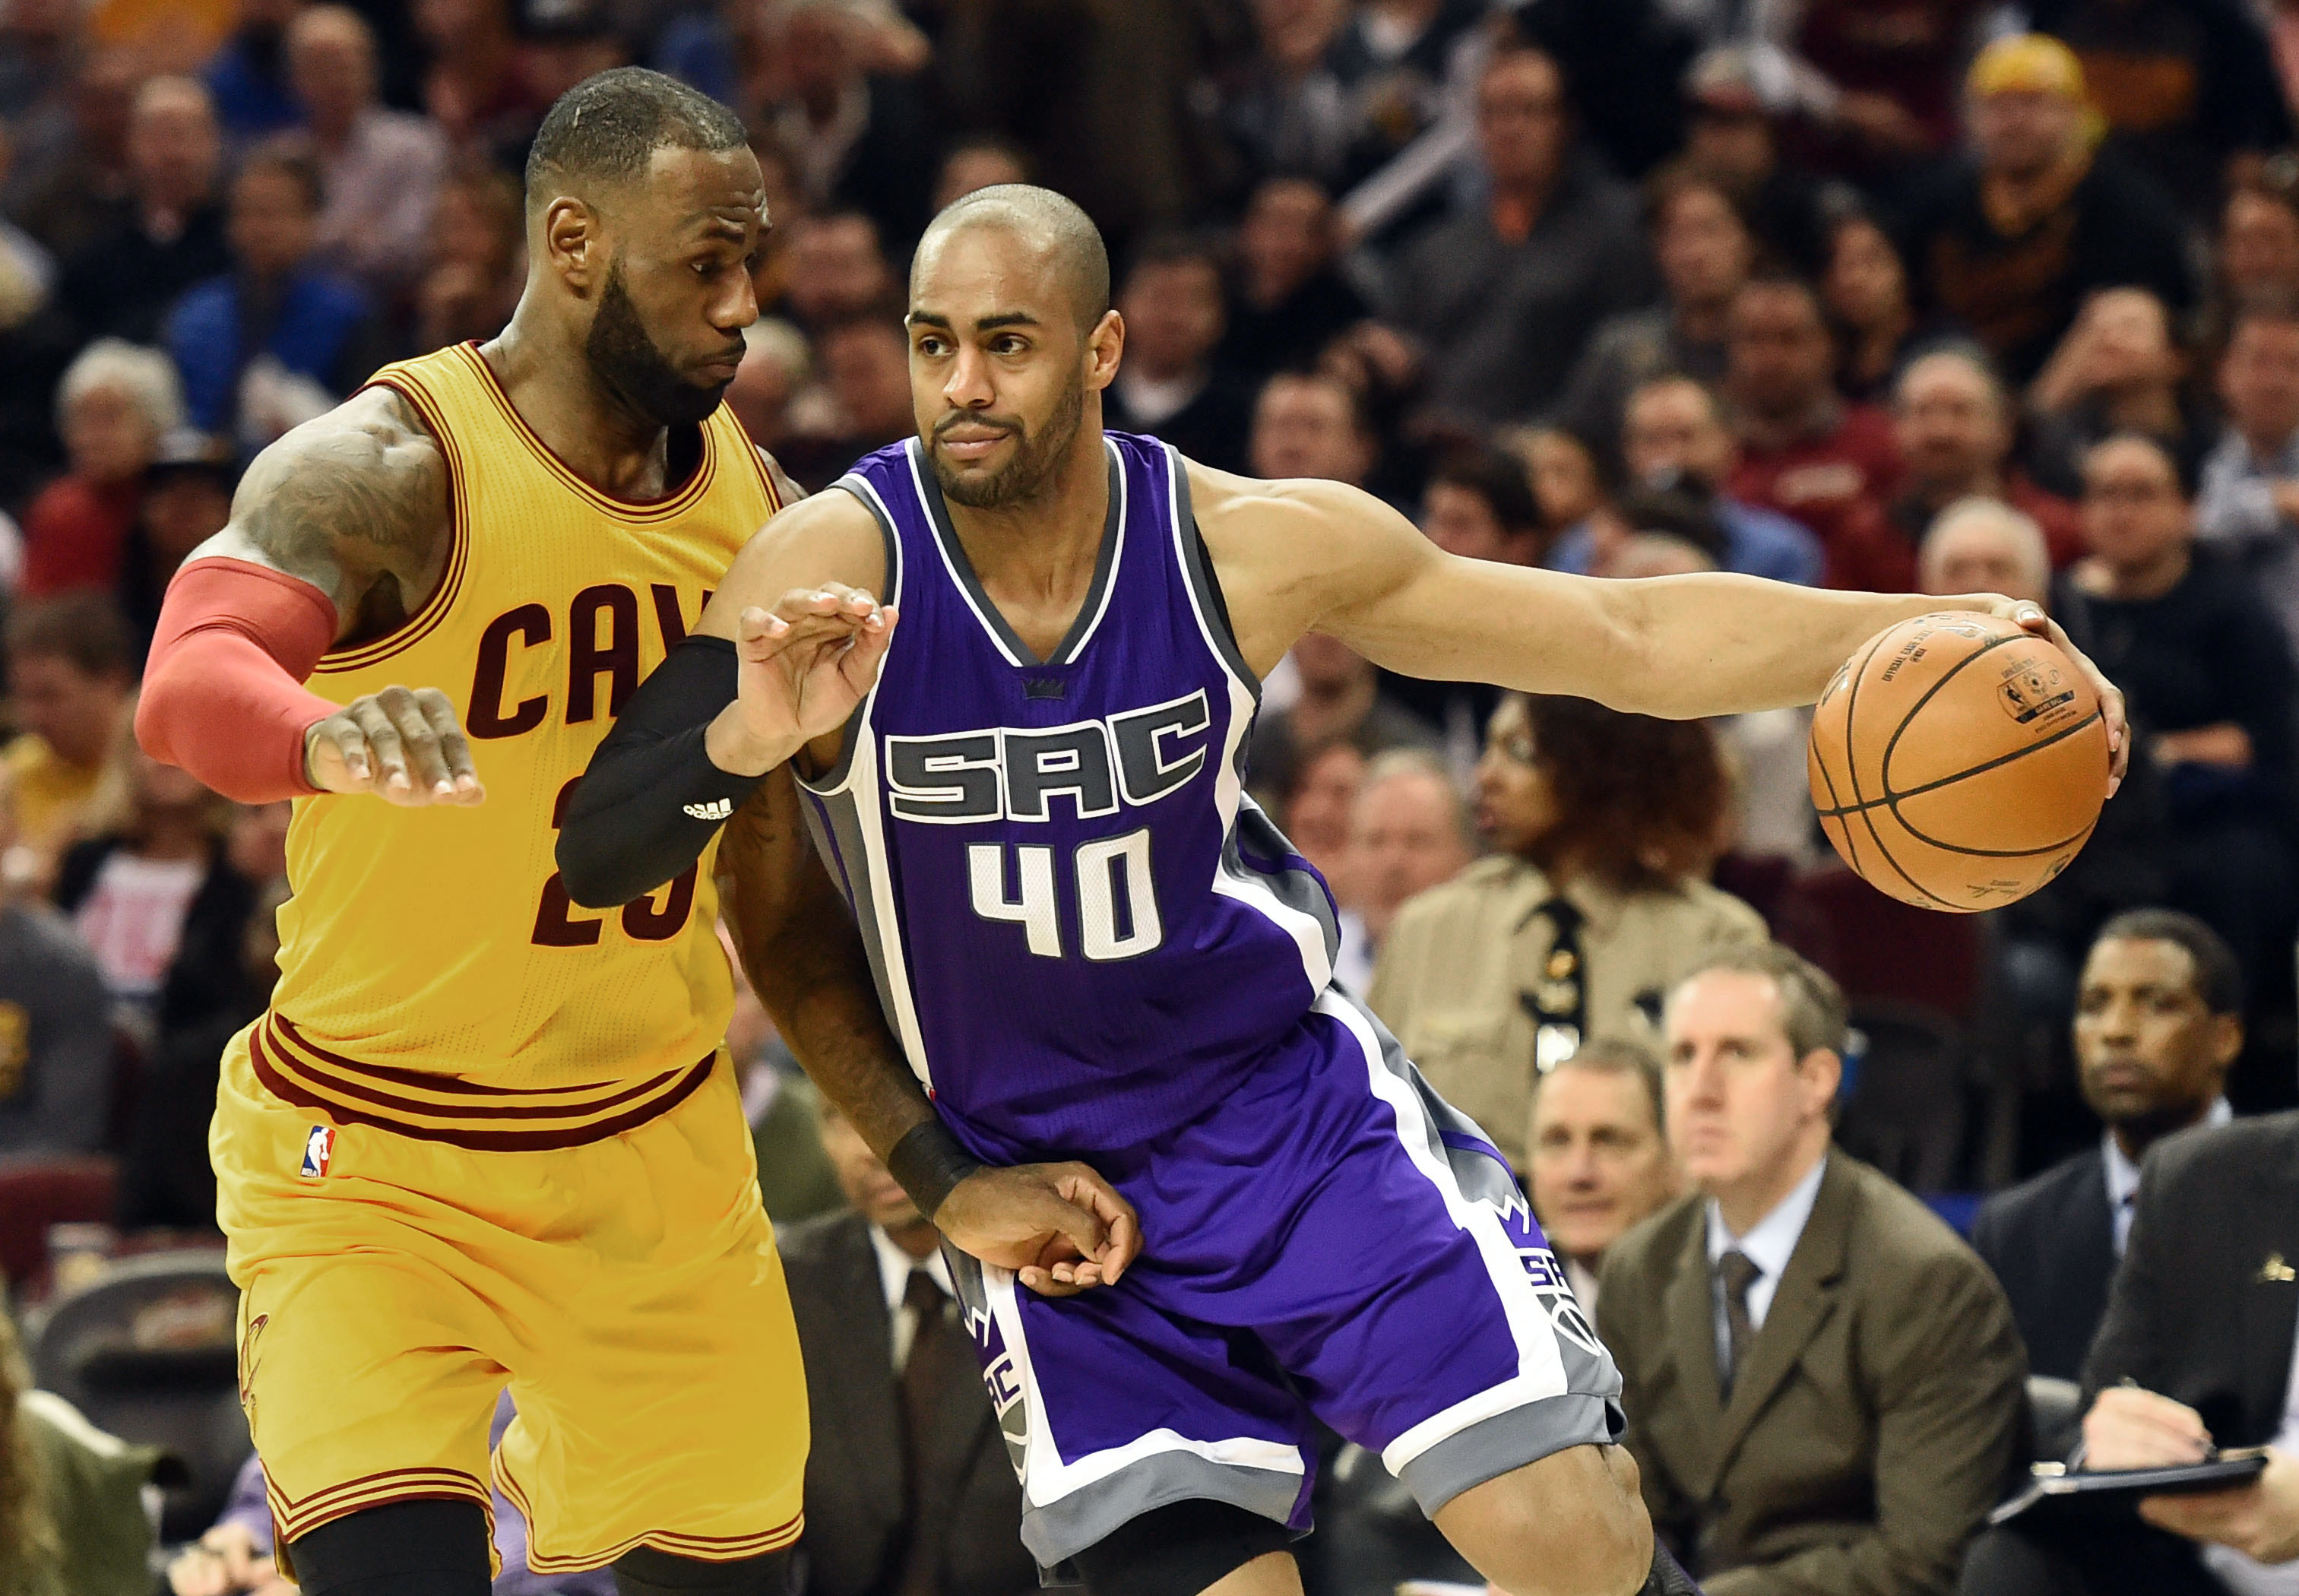 Jan 25, 2017; Cleveland, OH, USA; Sacramento Kings guard Arron Afflalo (40) drives to the basket against Cleveland Cavaliers forward LeBron James (23) during the second half at Quicken Loans Arena. The Kings won 116-112. Mandatory Credit: Ken Blaze-USA TODAY Sports